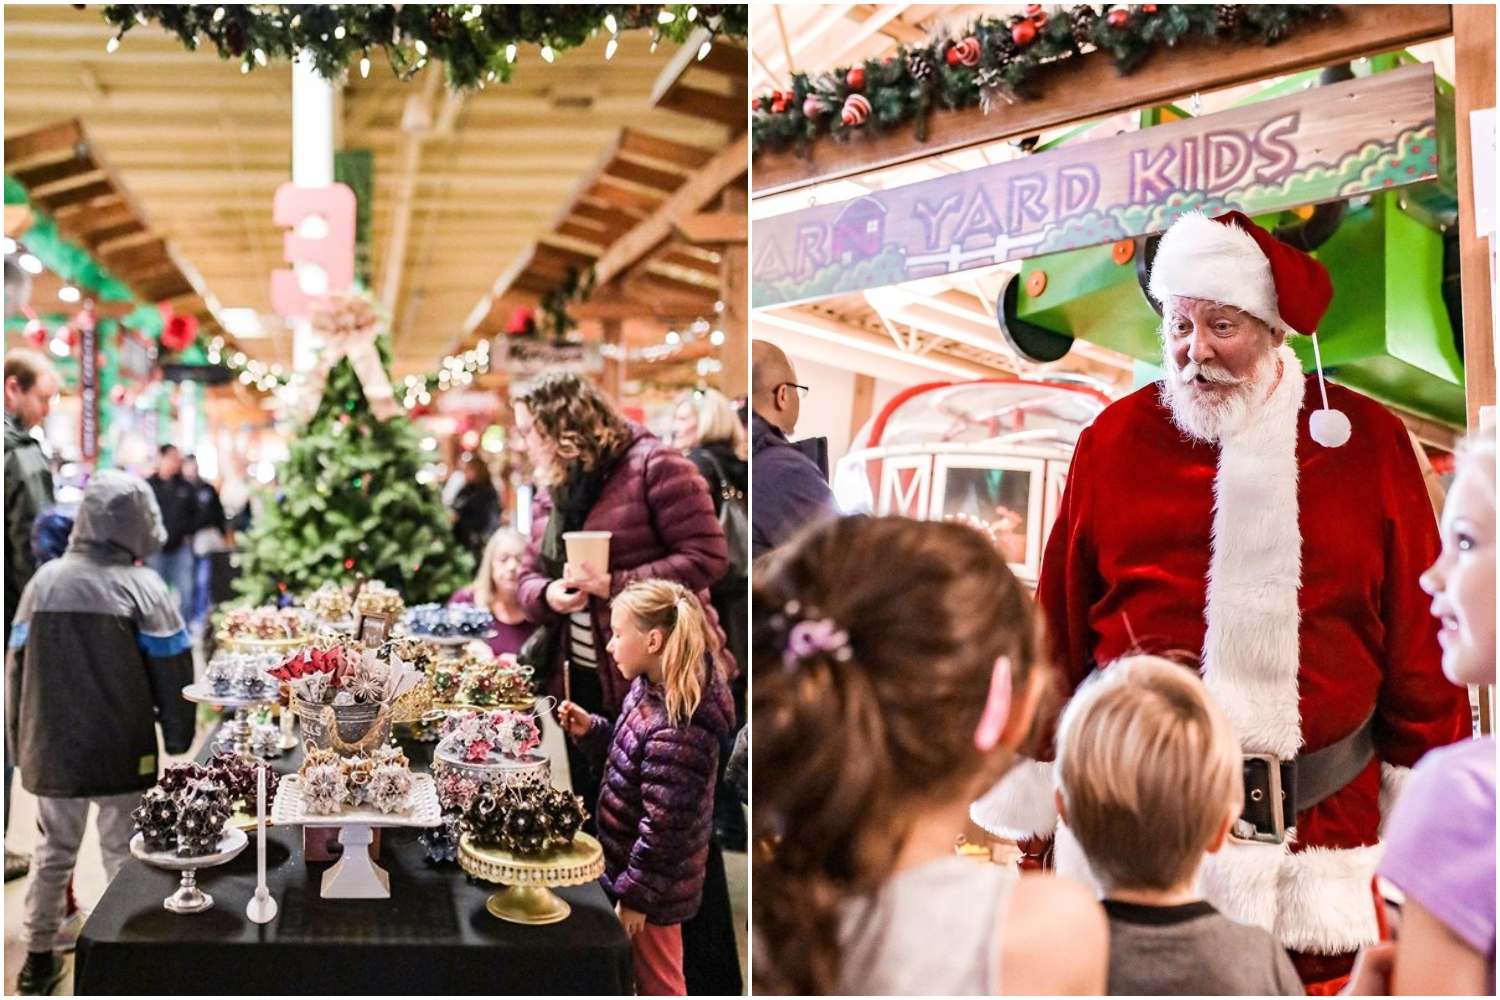 The Calgary Farmers' Christmas Market to return with new vendors this month!